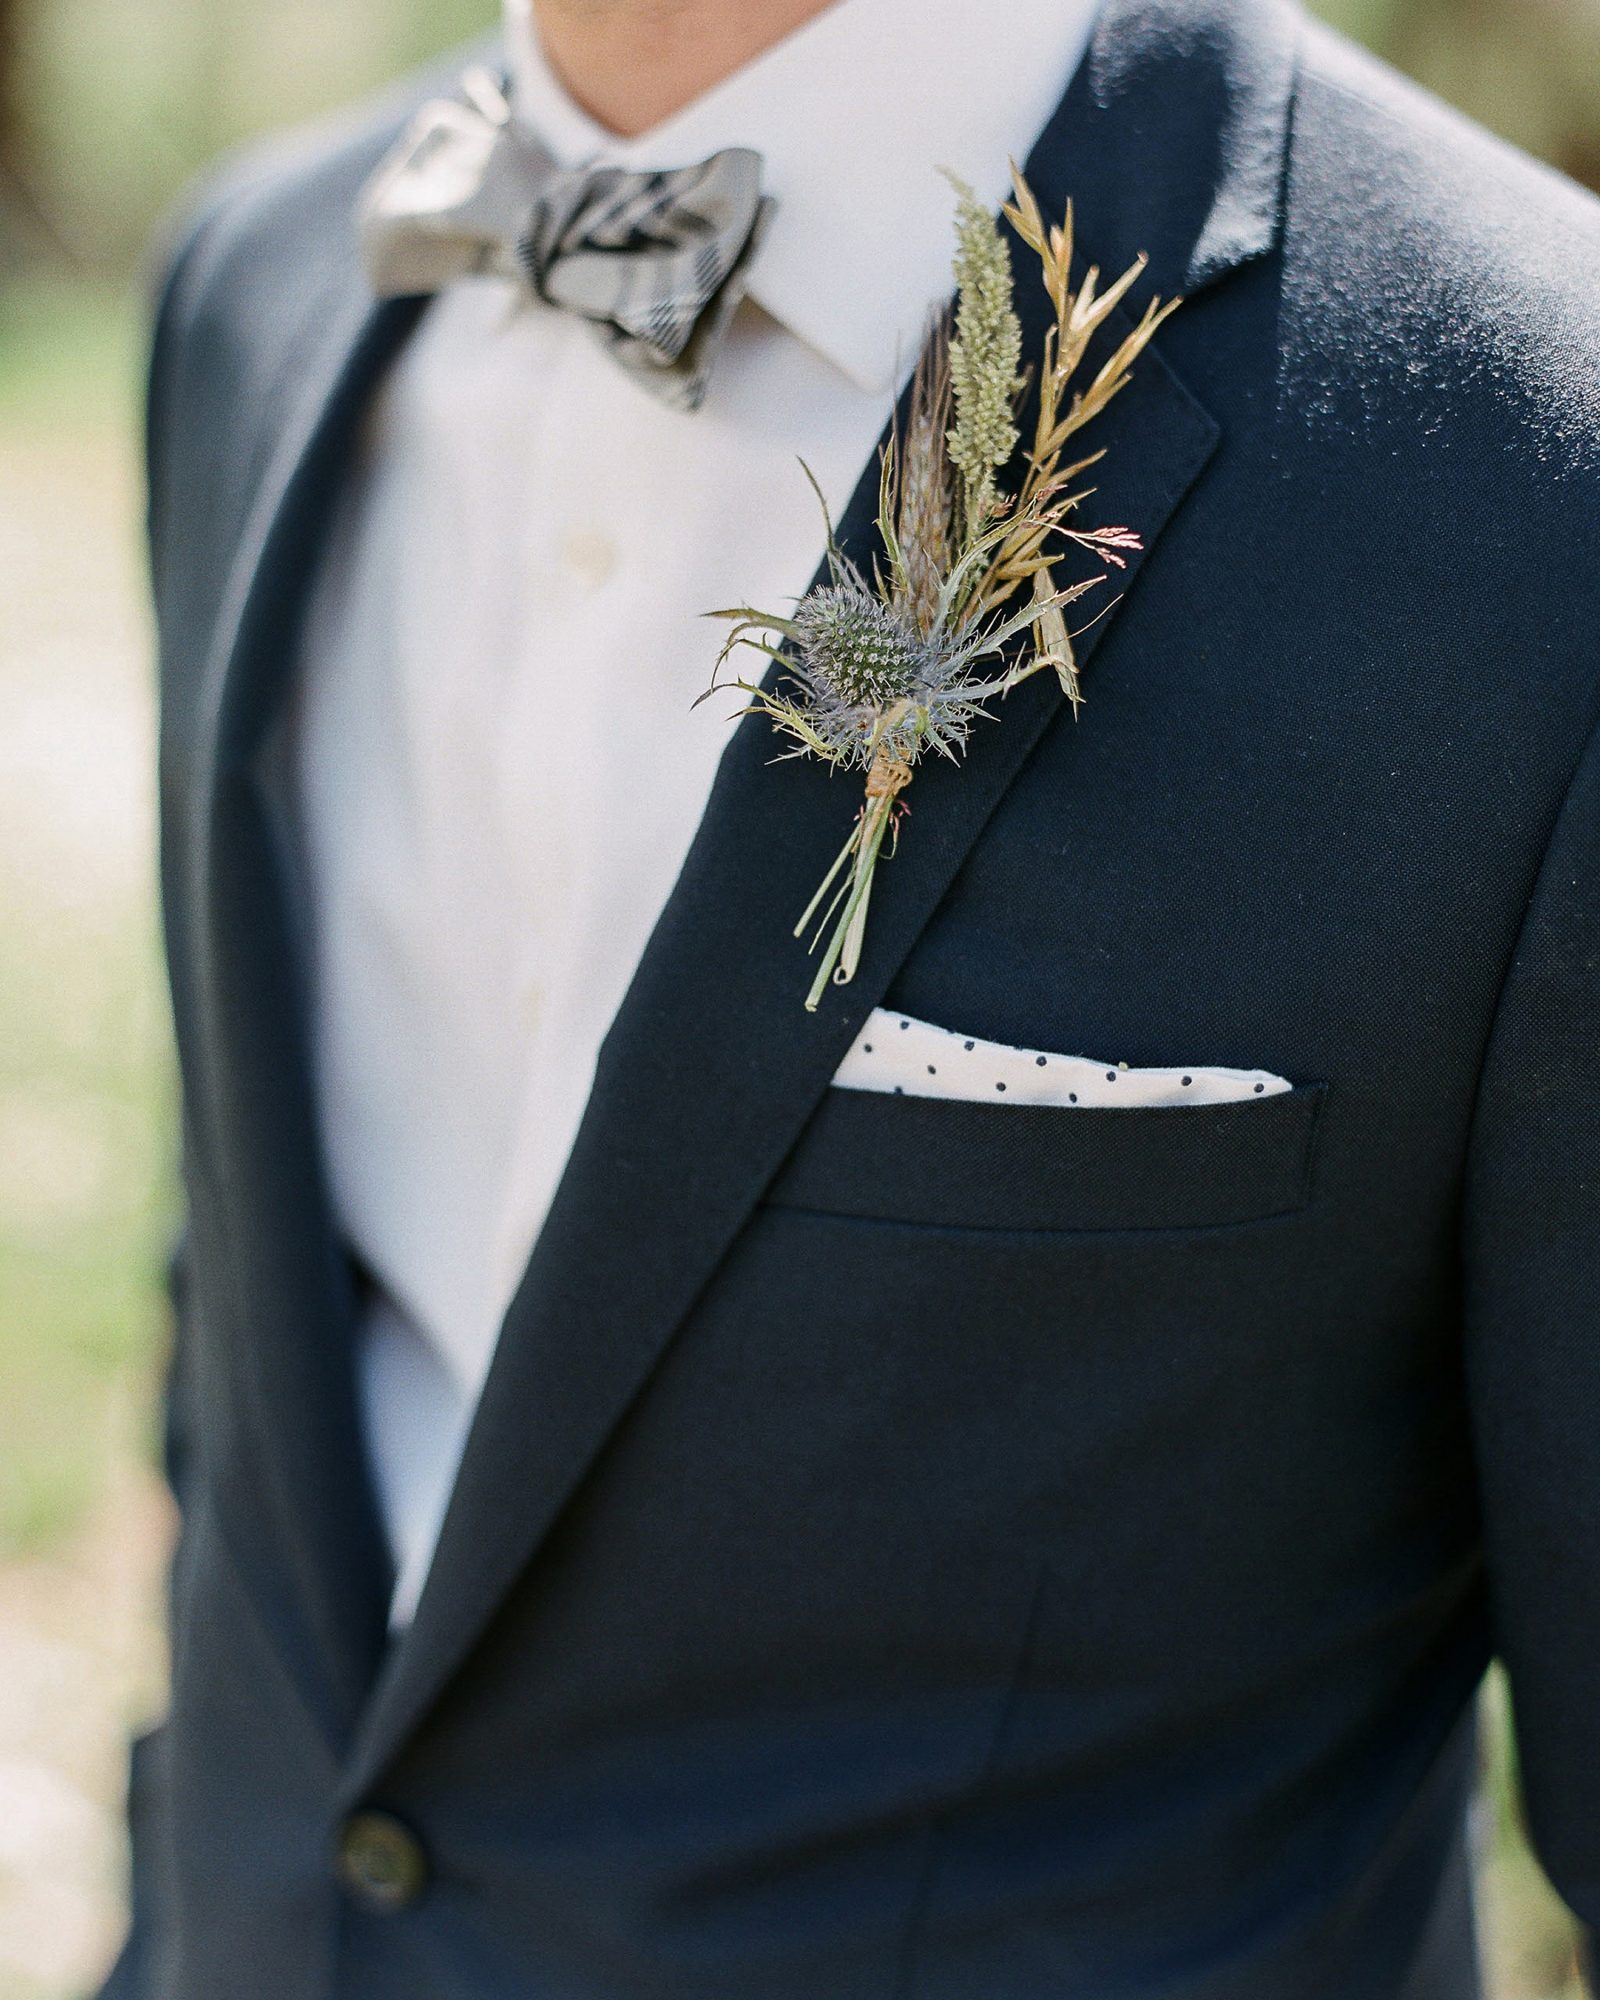 A Lively Lapel